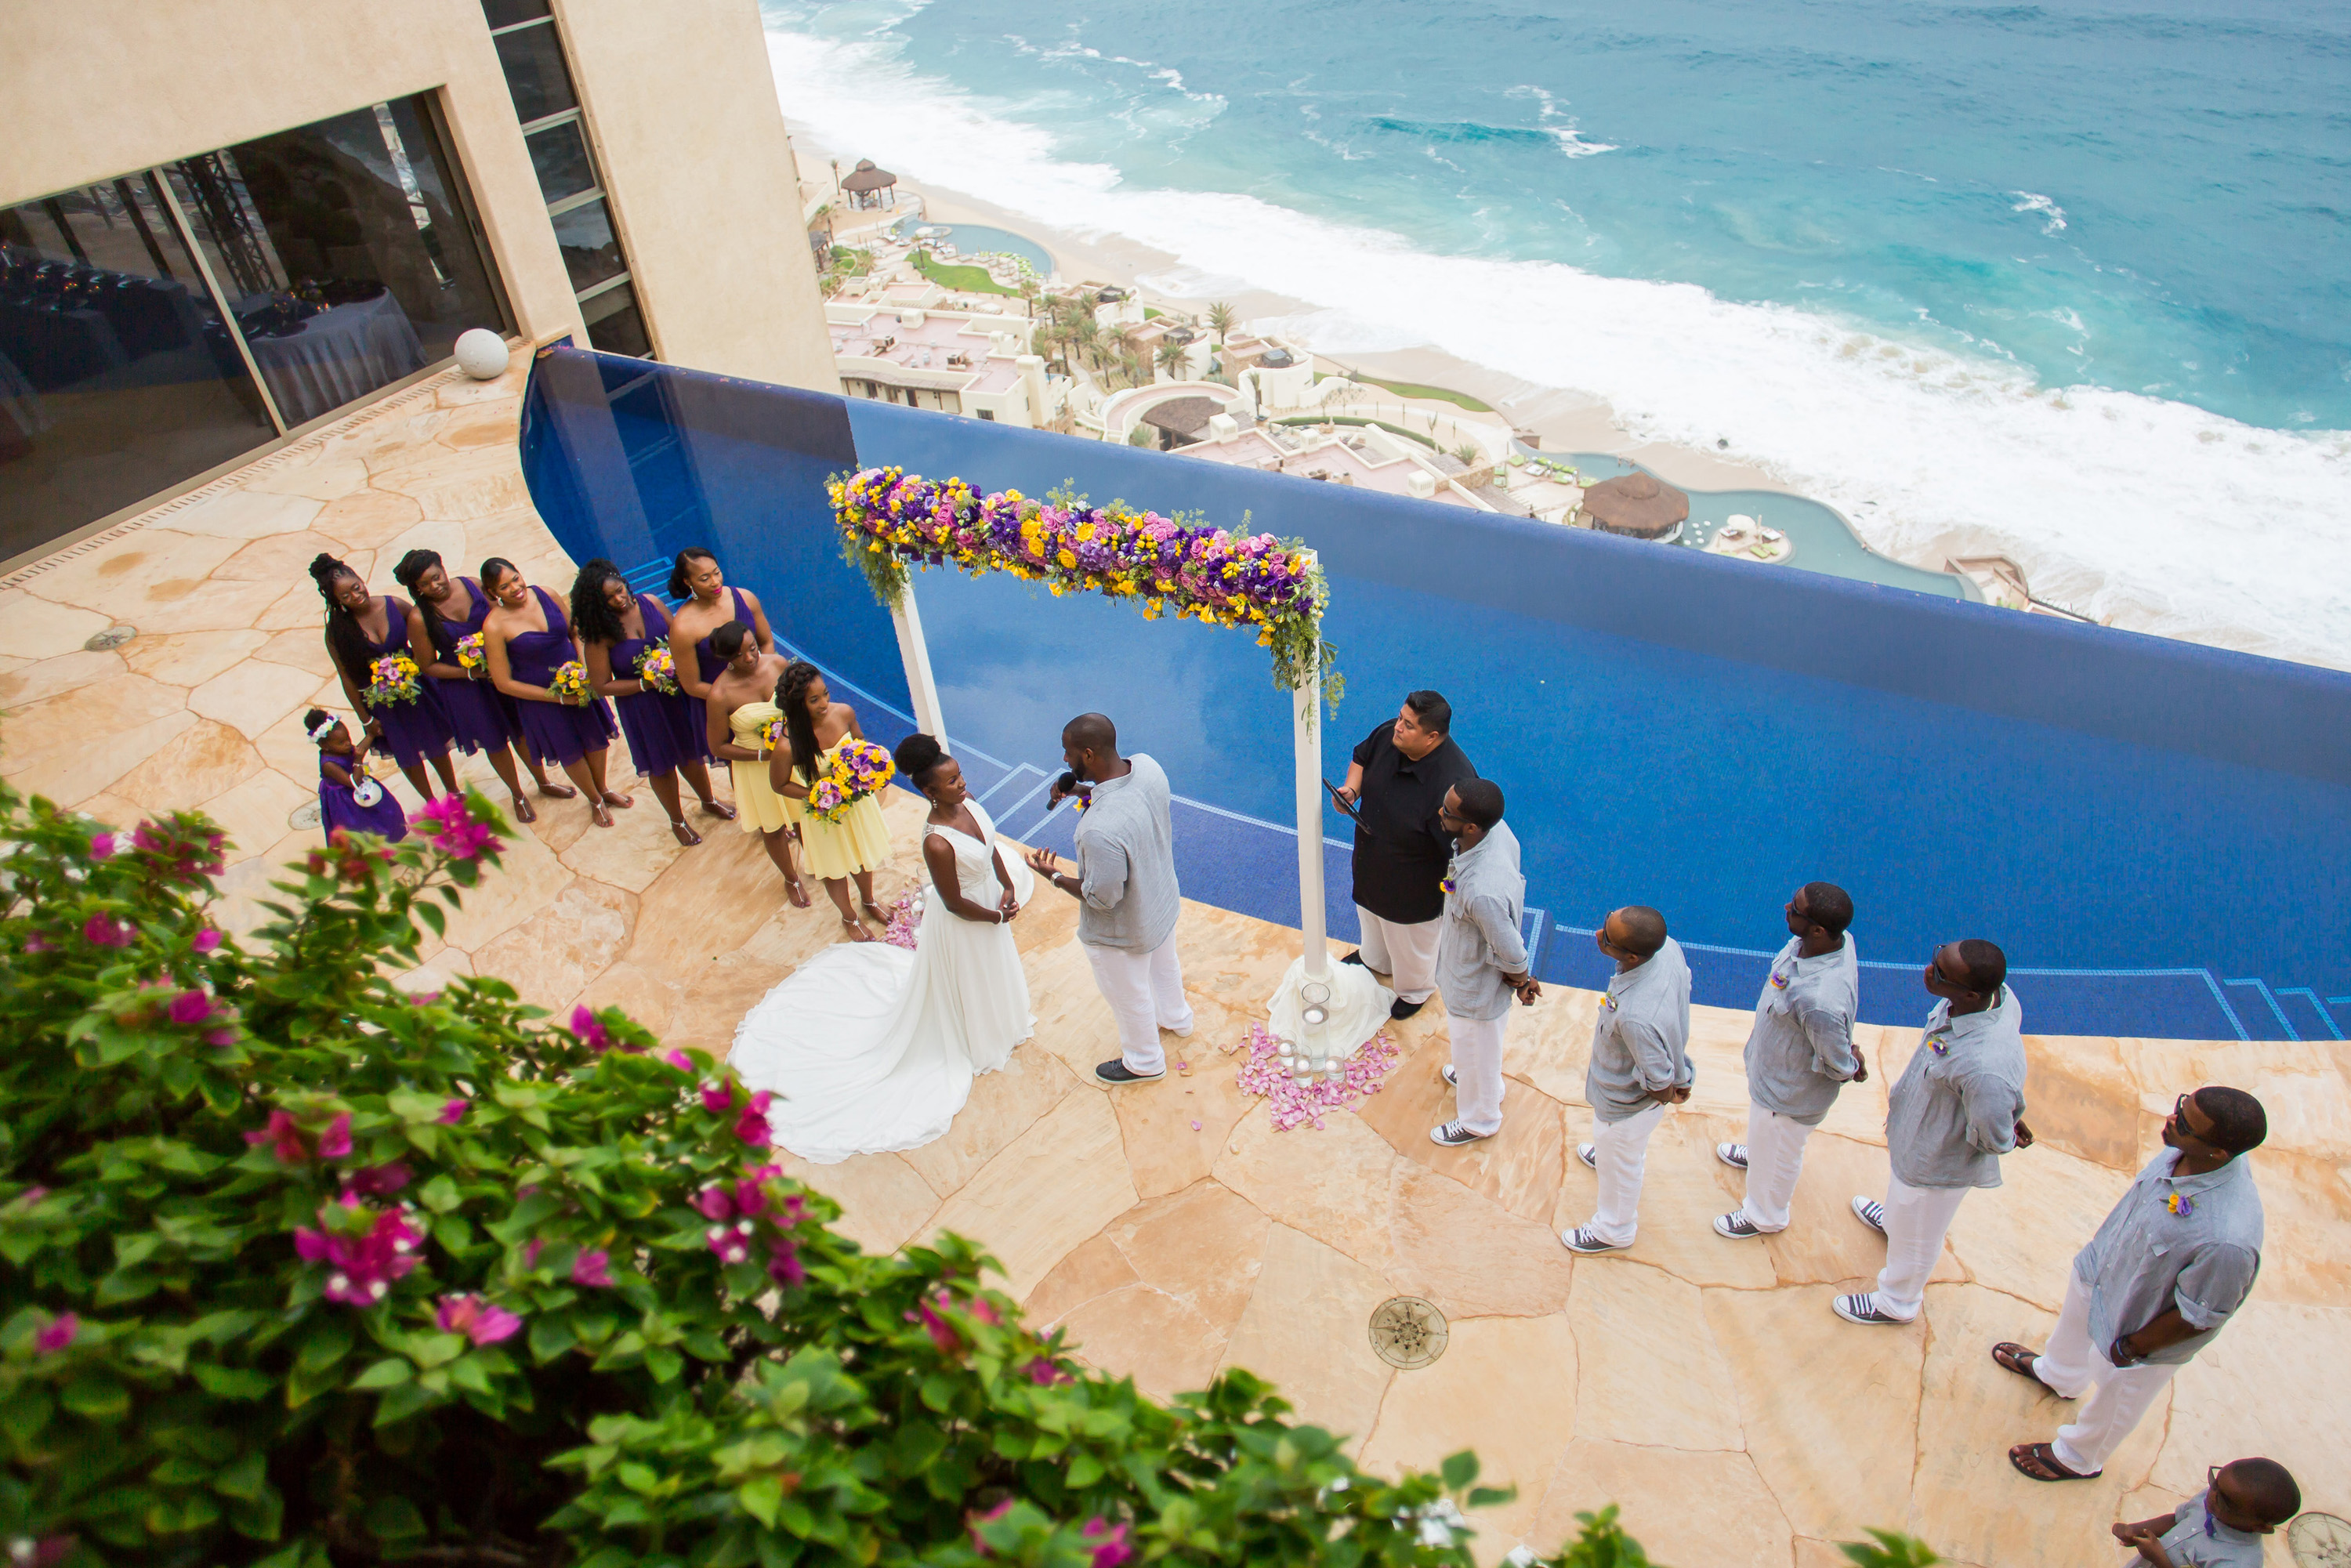 Luxury Los Cabos destination wedding at private vacation rental Villa Bellissima in Cabo San Lucas Mexico CaboVillas.com / CaboSanLucasWeddings.com